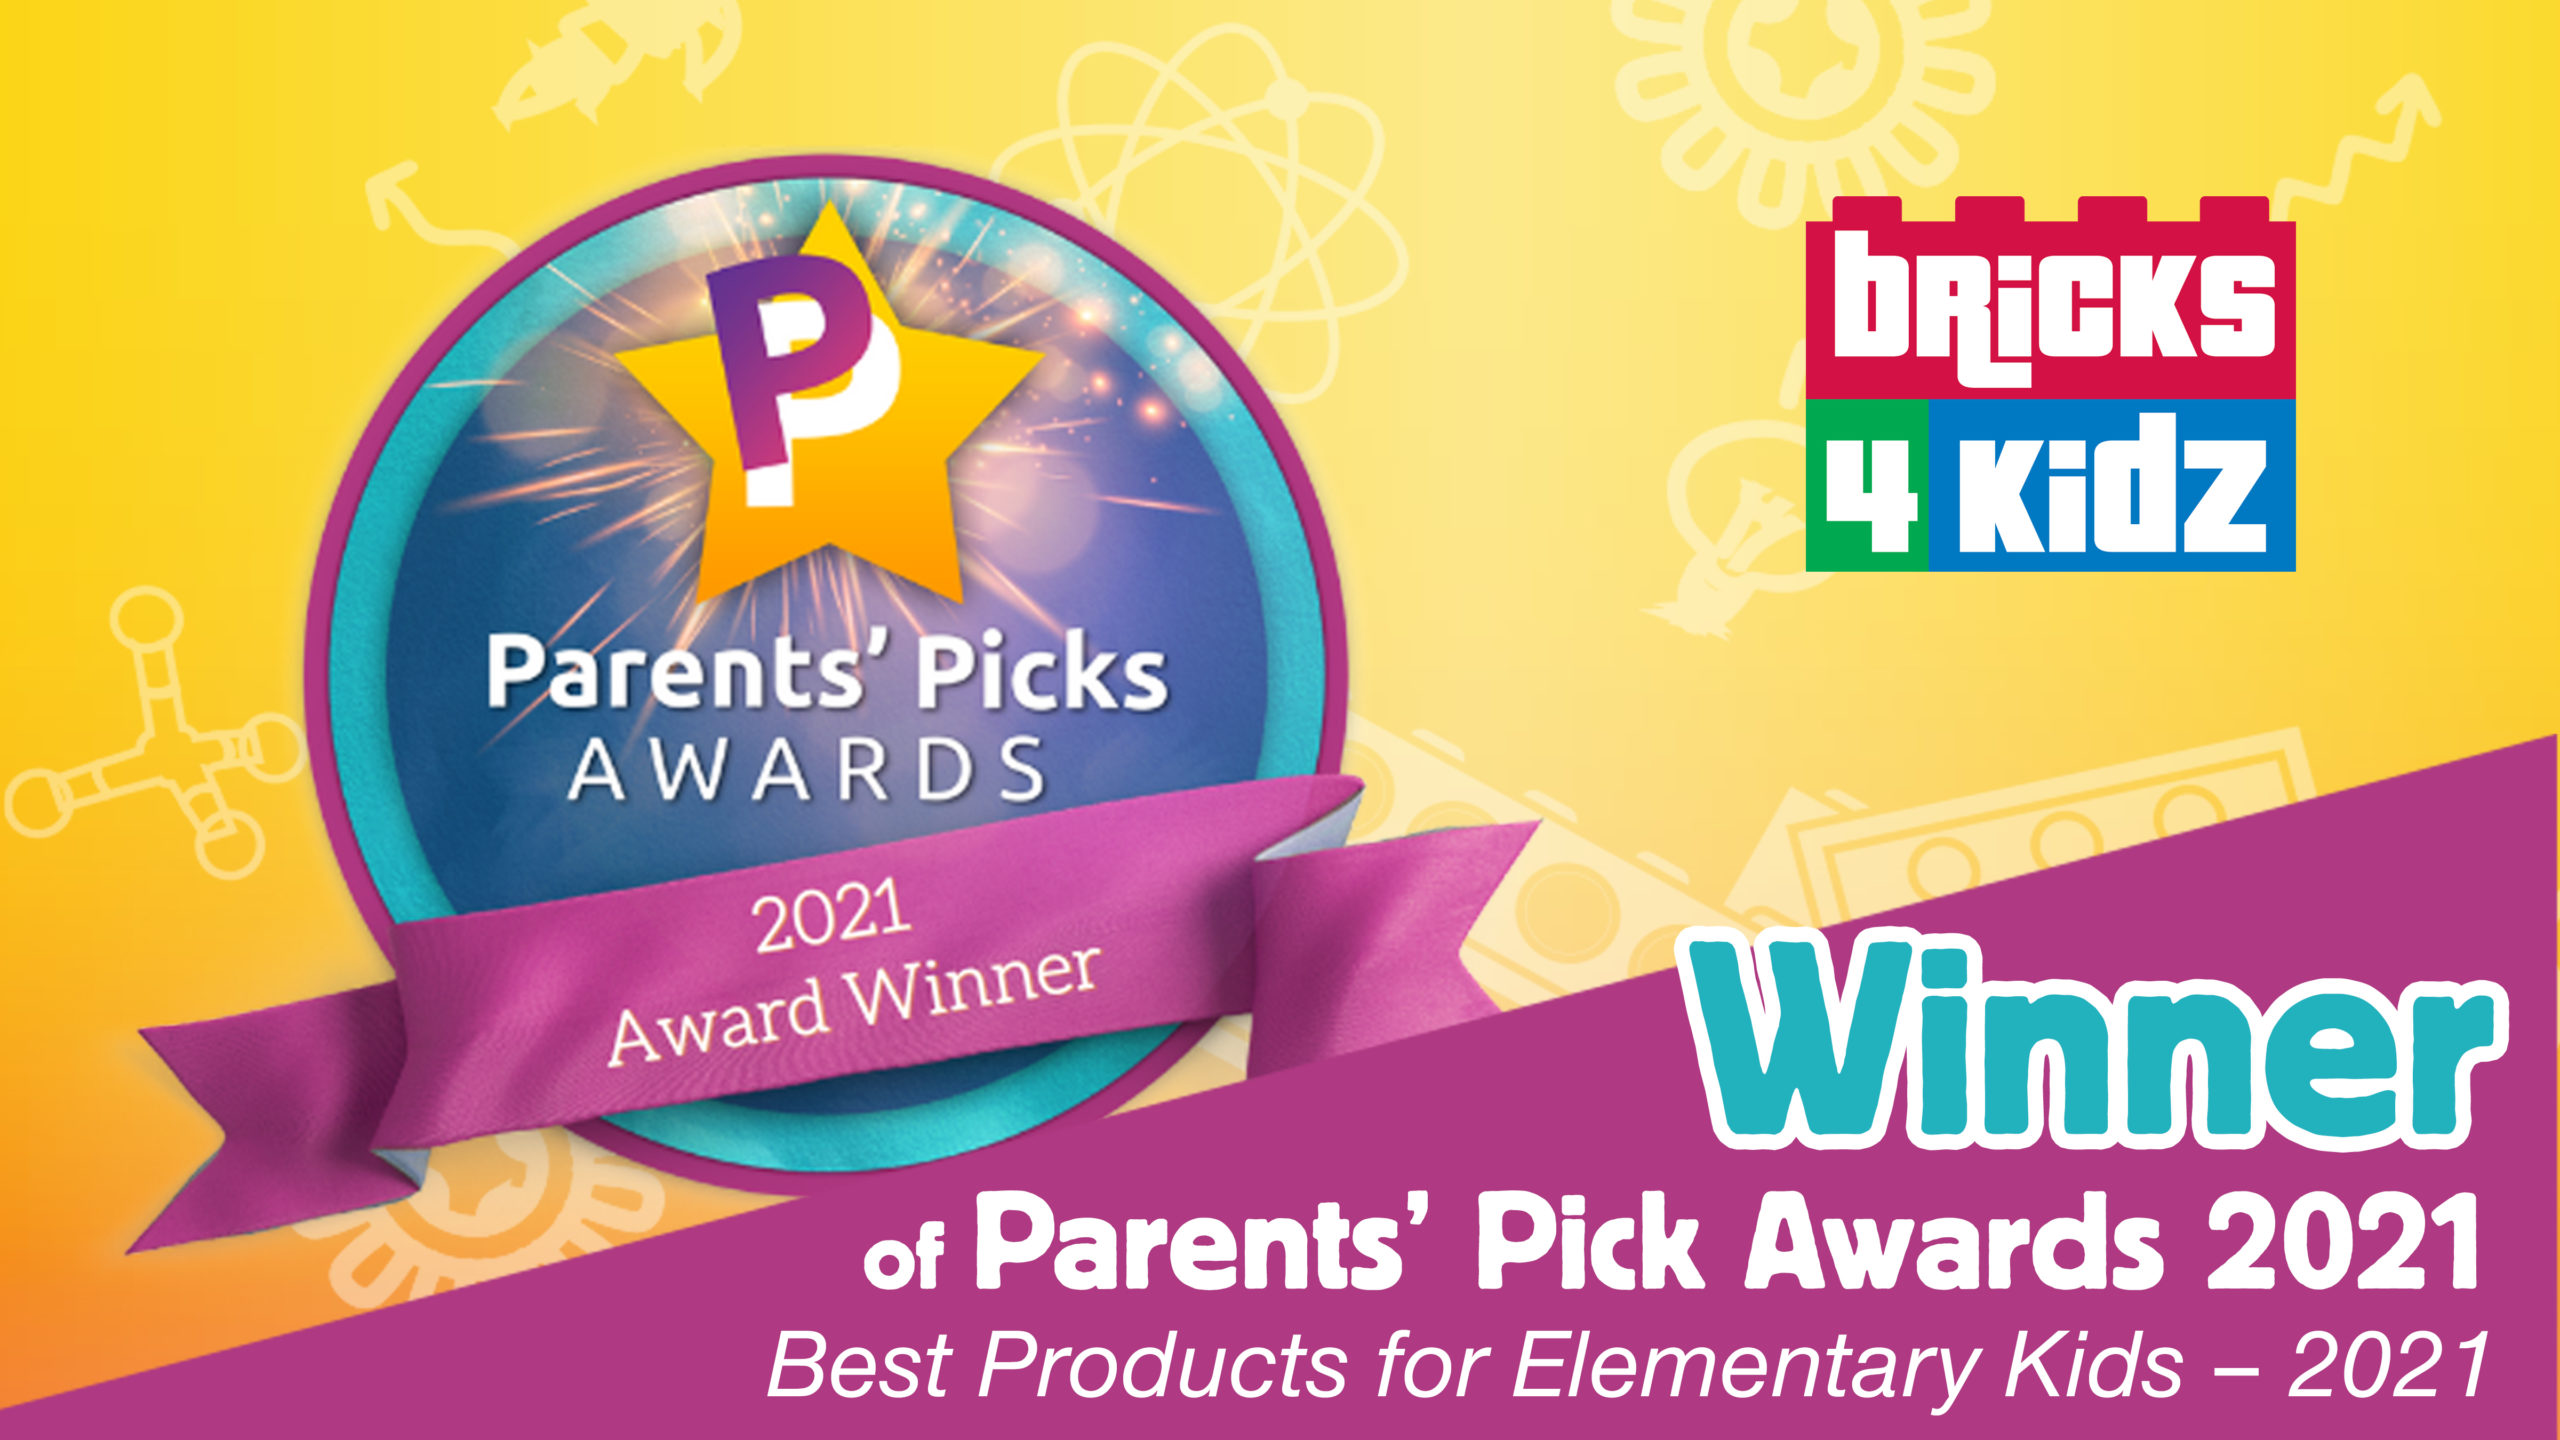 Bricks 4 Kidz Awarded The Best Products for Elementary Kids – 2021 by Parents' Picks Awards!